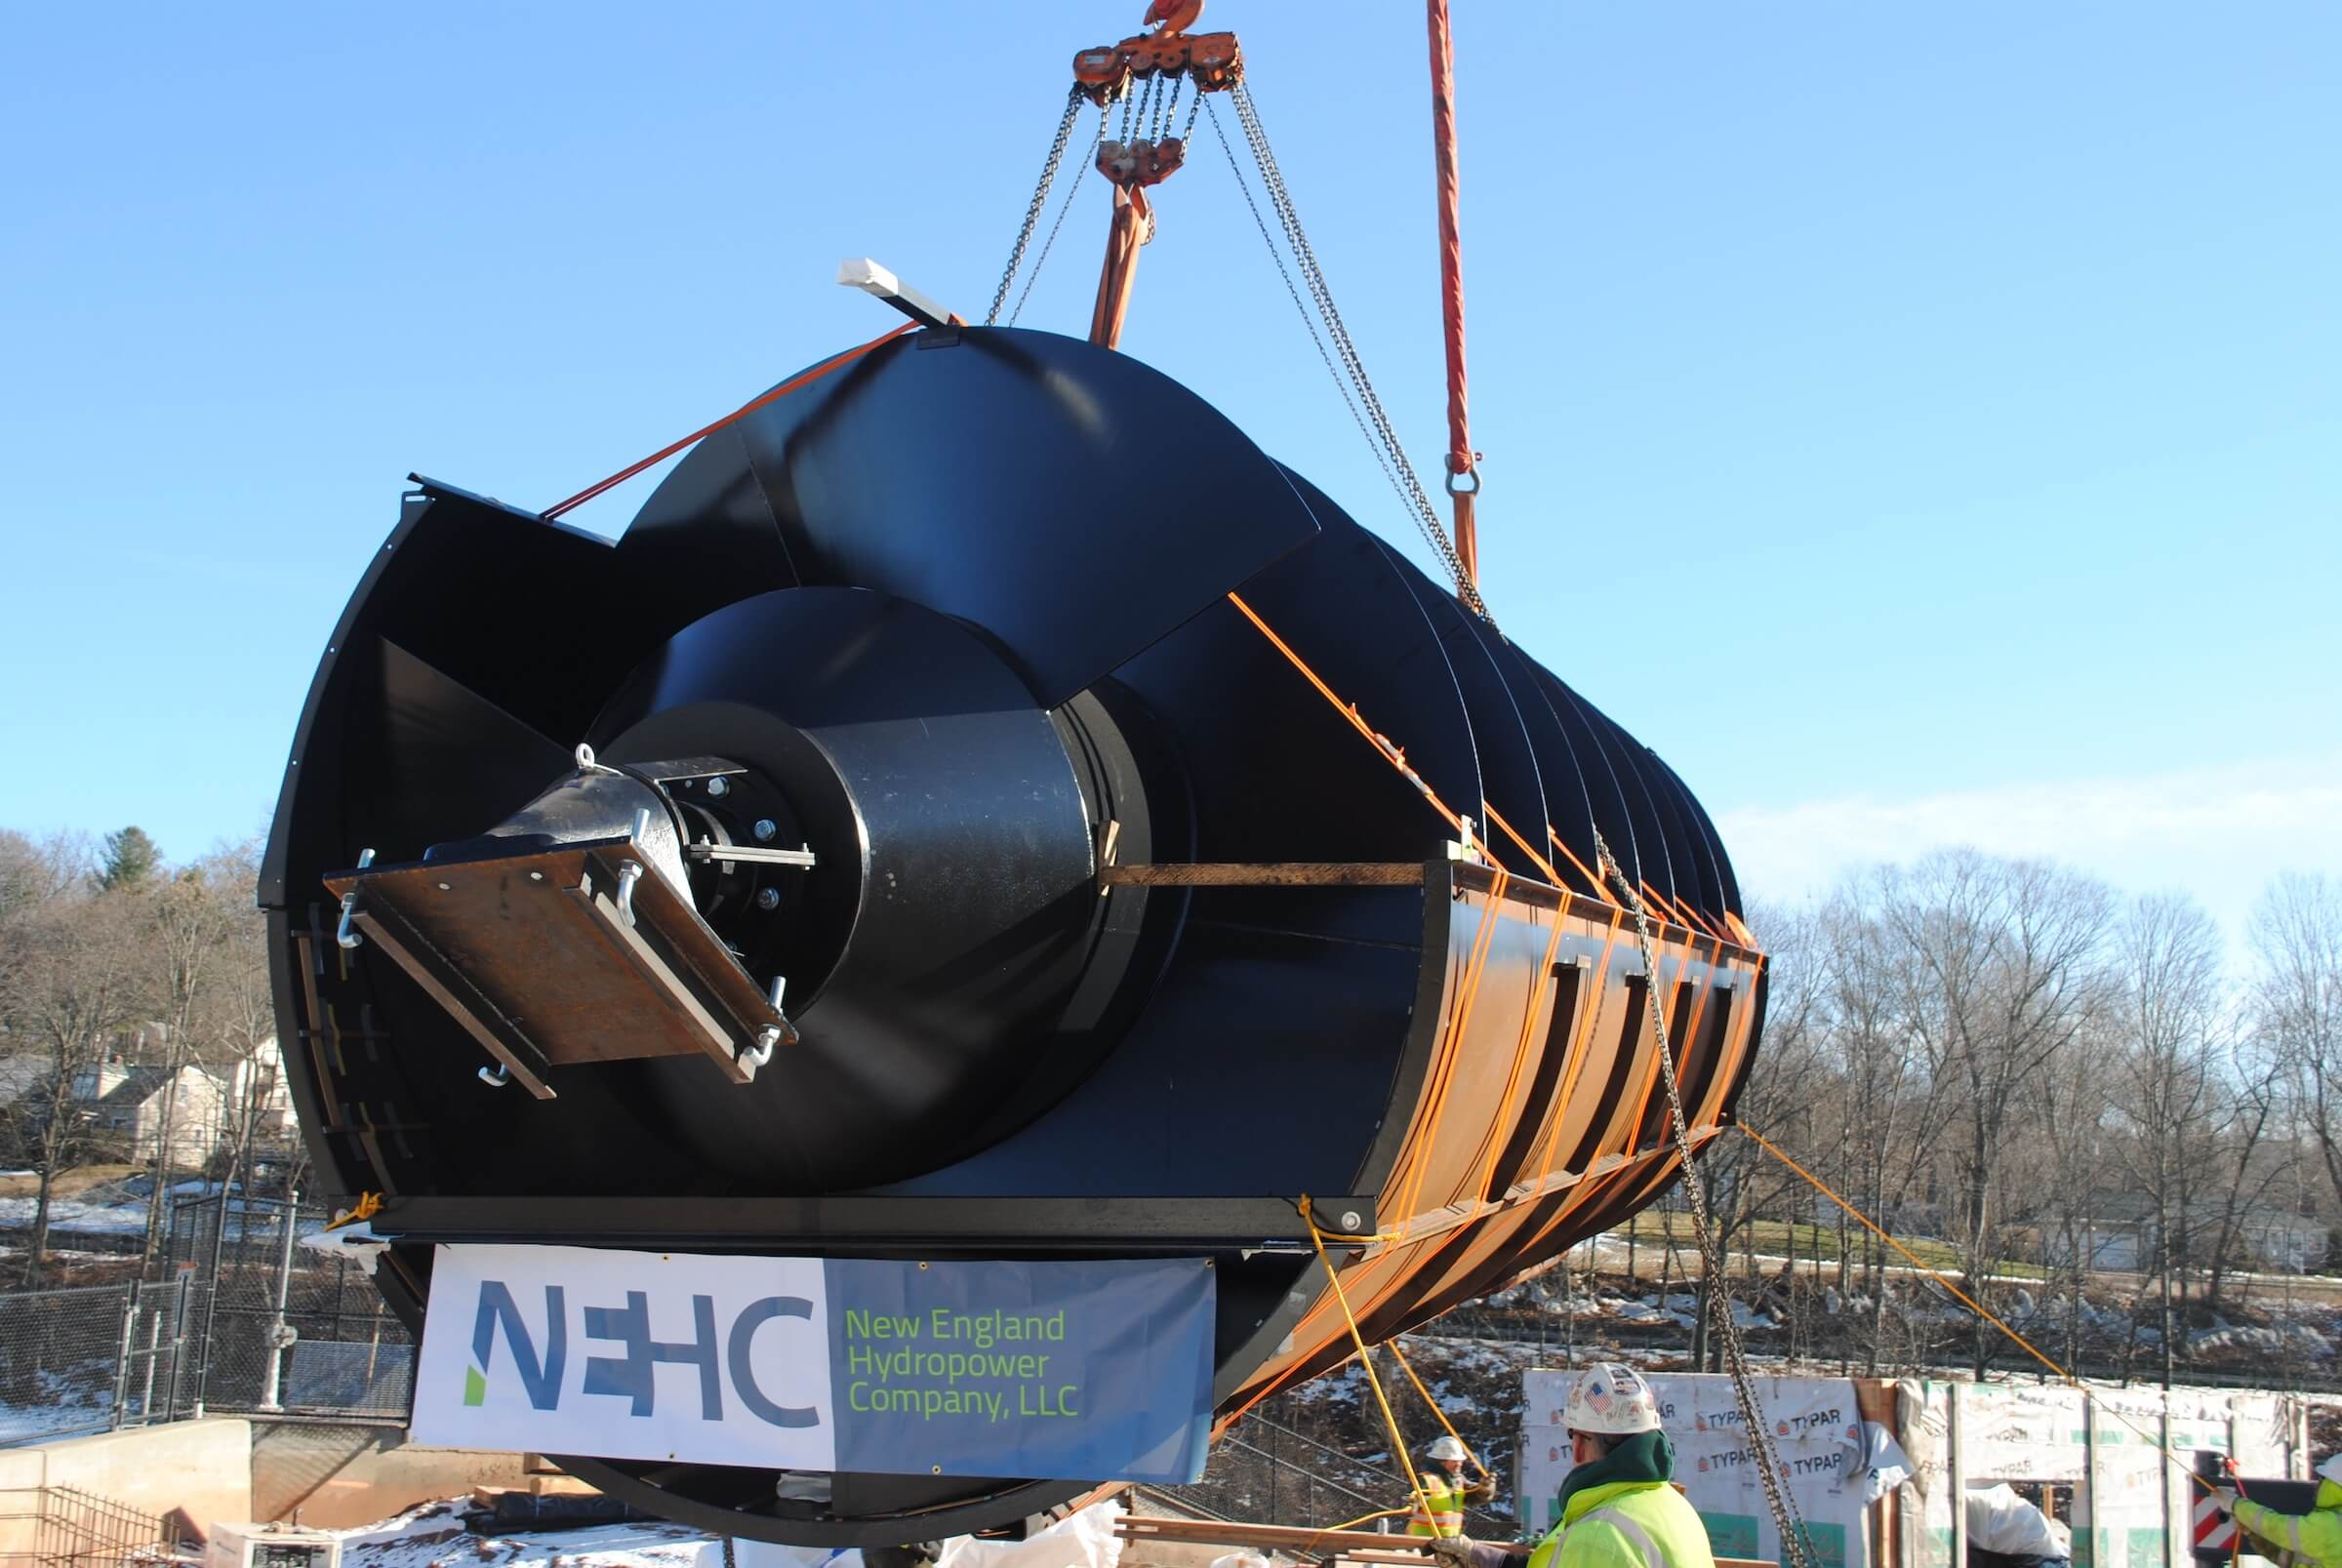 Lifting Archimedes Screw Turbine into place with NEHC signage